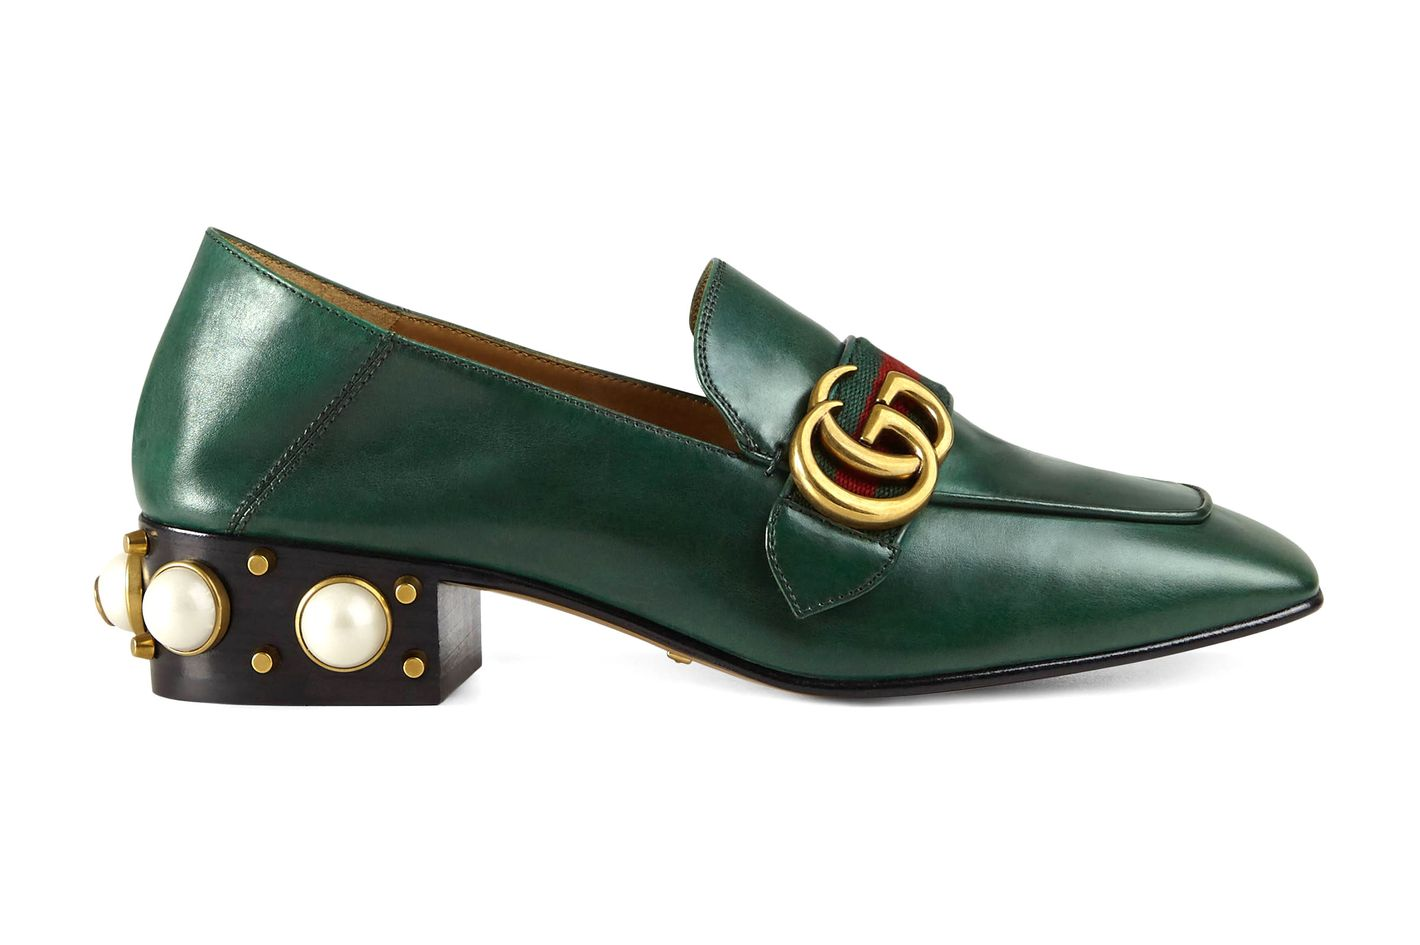 c2a29a703bf 13 Pairs of Chic Shoes You Can Actually Walk In